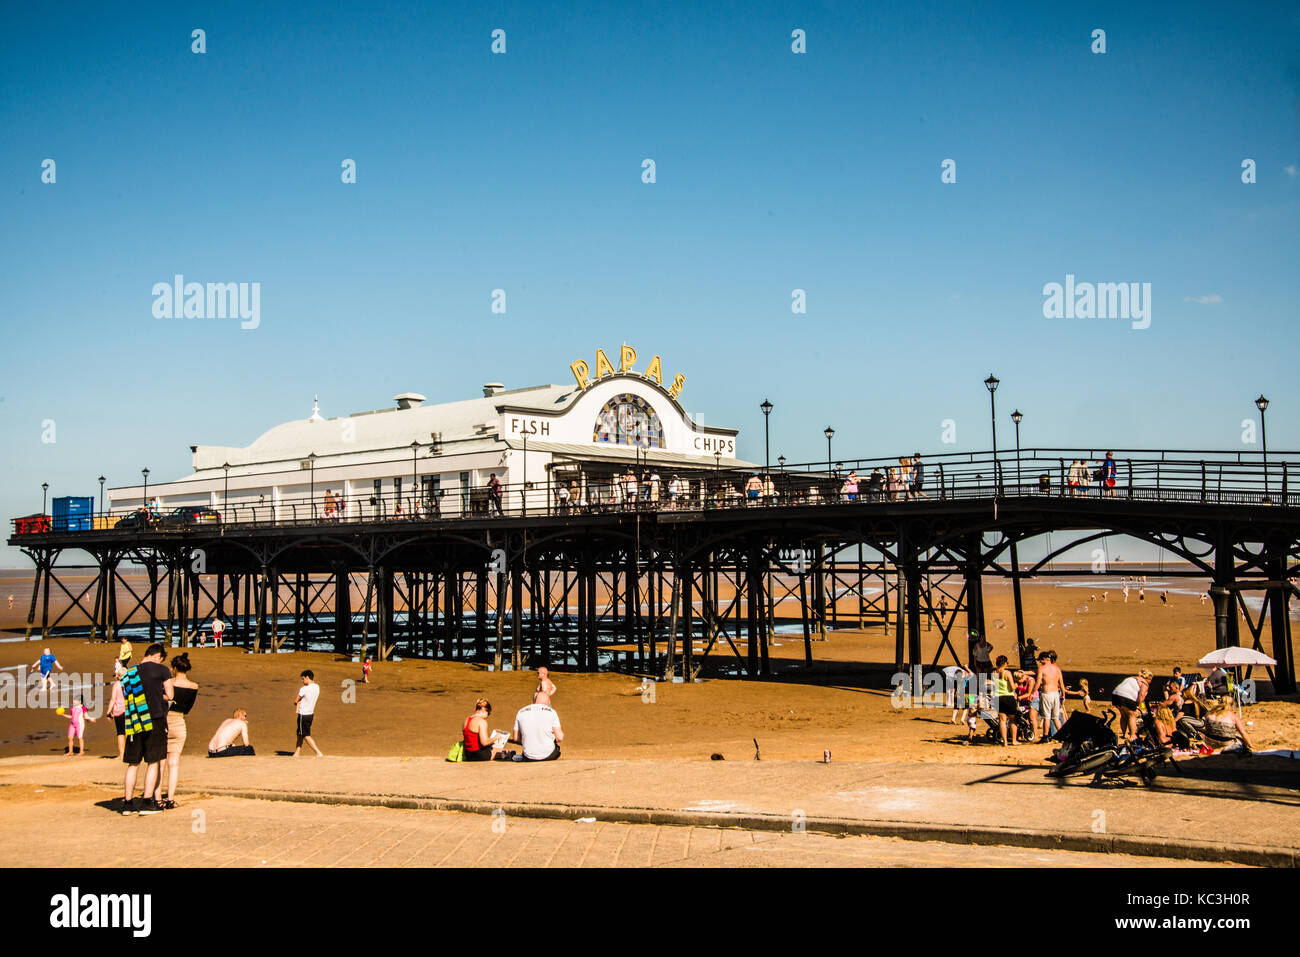 hot day by the pier Cleethorpes Yorkshire Ray Boswell - Stock Image